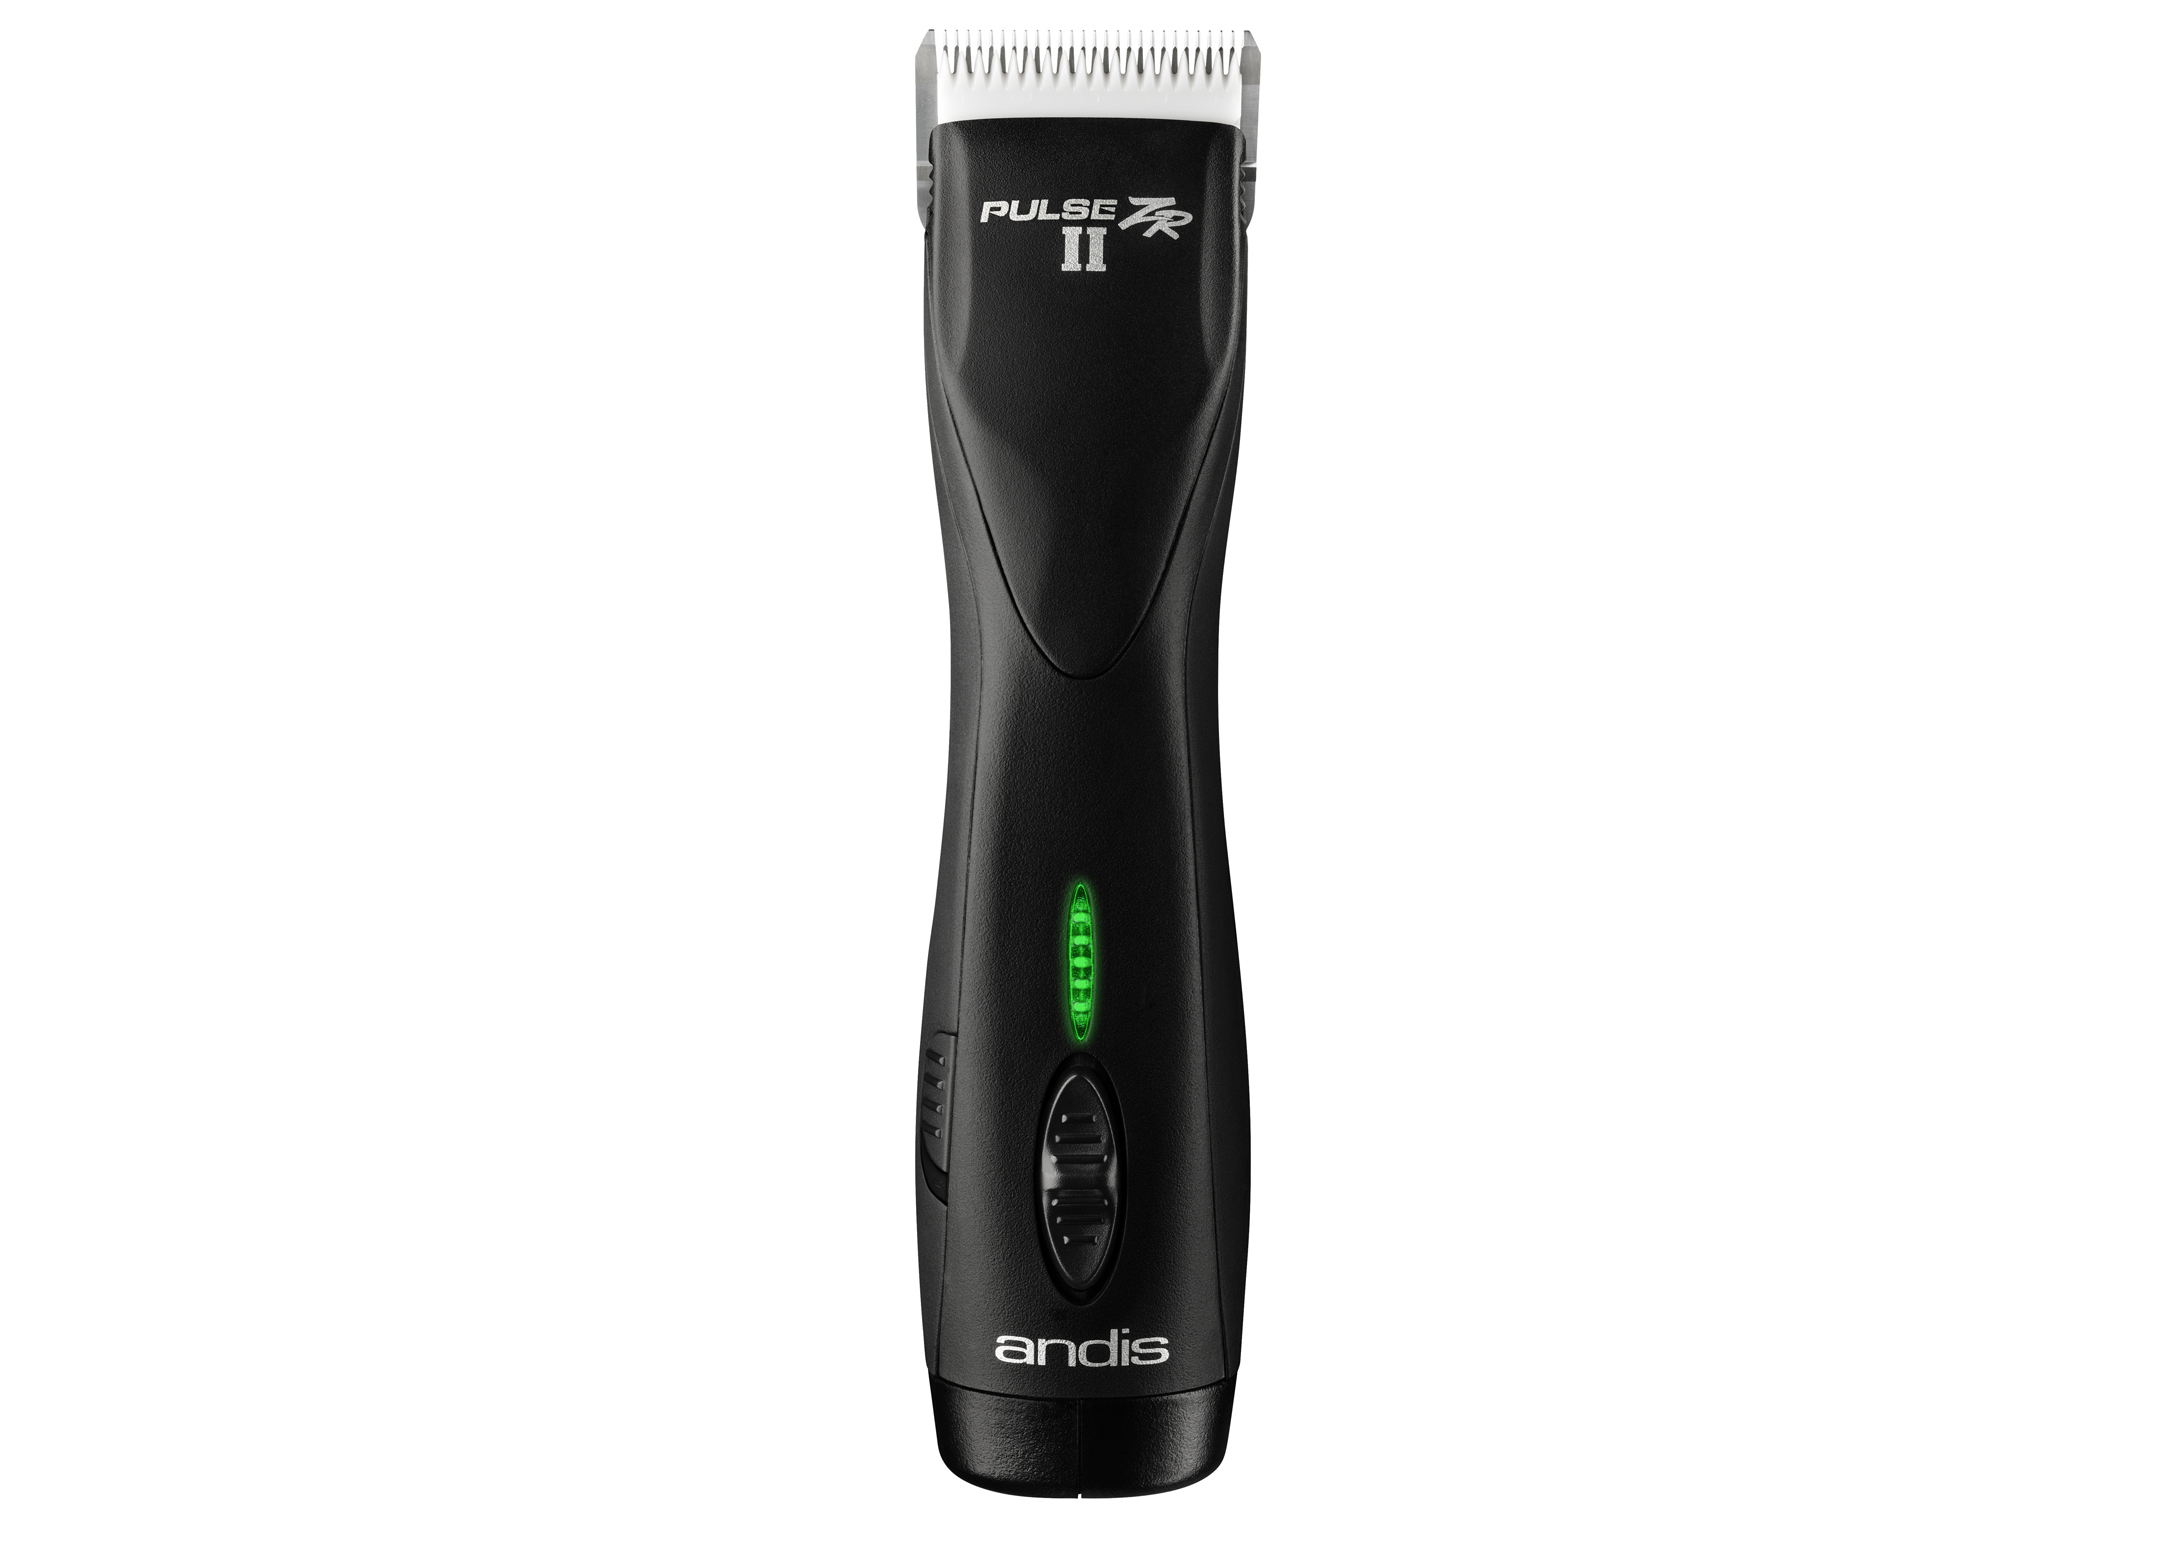 Andis Pulse ZR II 5-Speed Cordless Clipper with #10 Blade